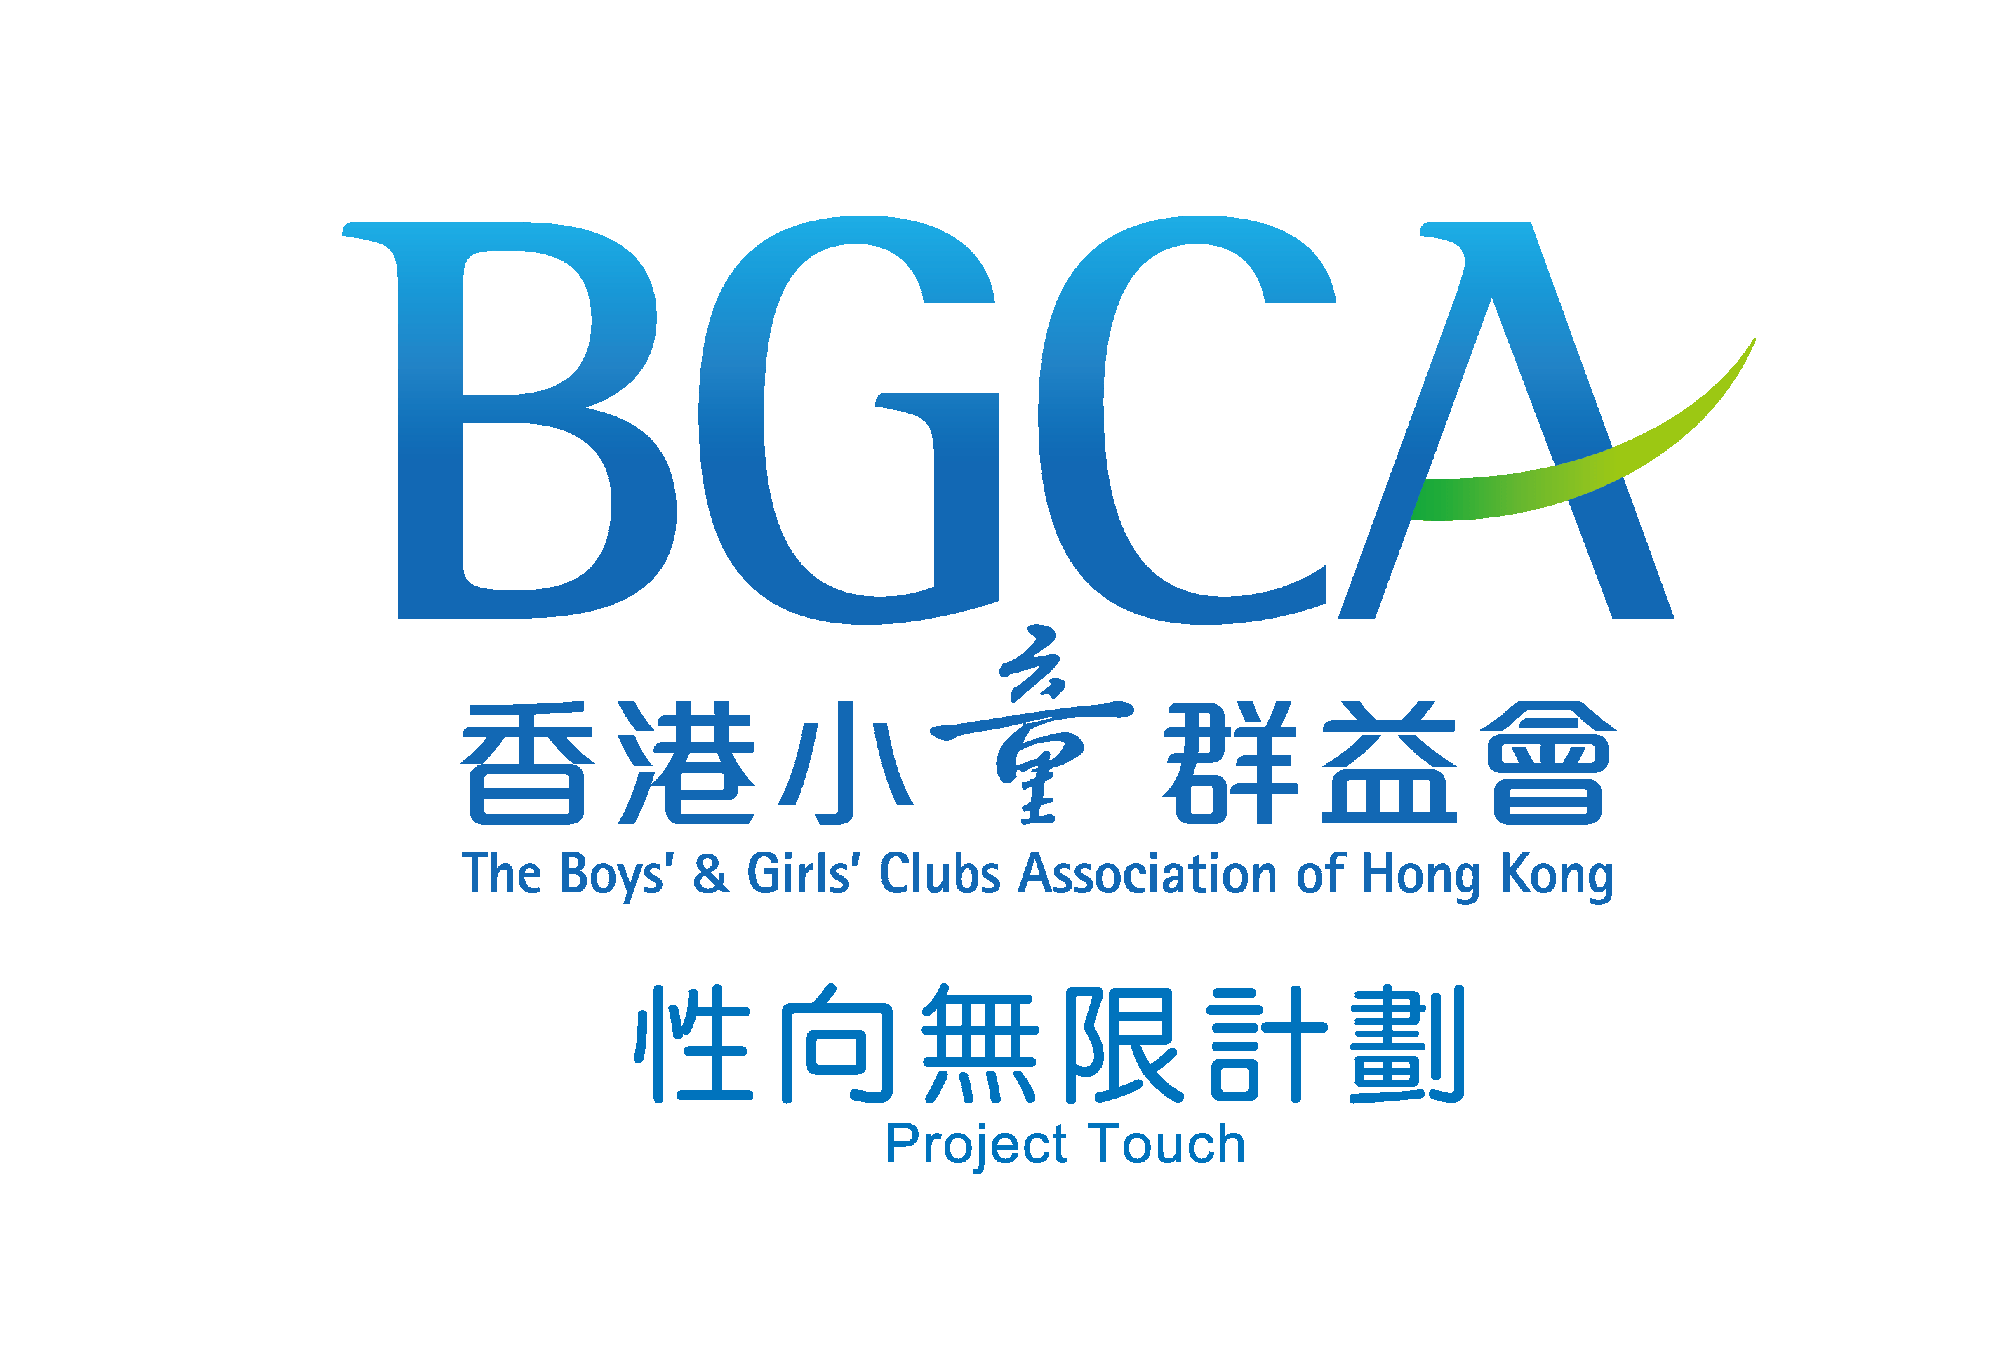 Project Touch of The Boys' & Girls' Clubs Association of Hong Kong